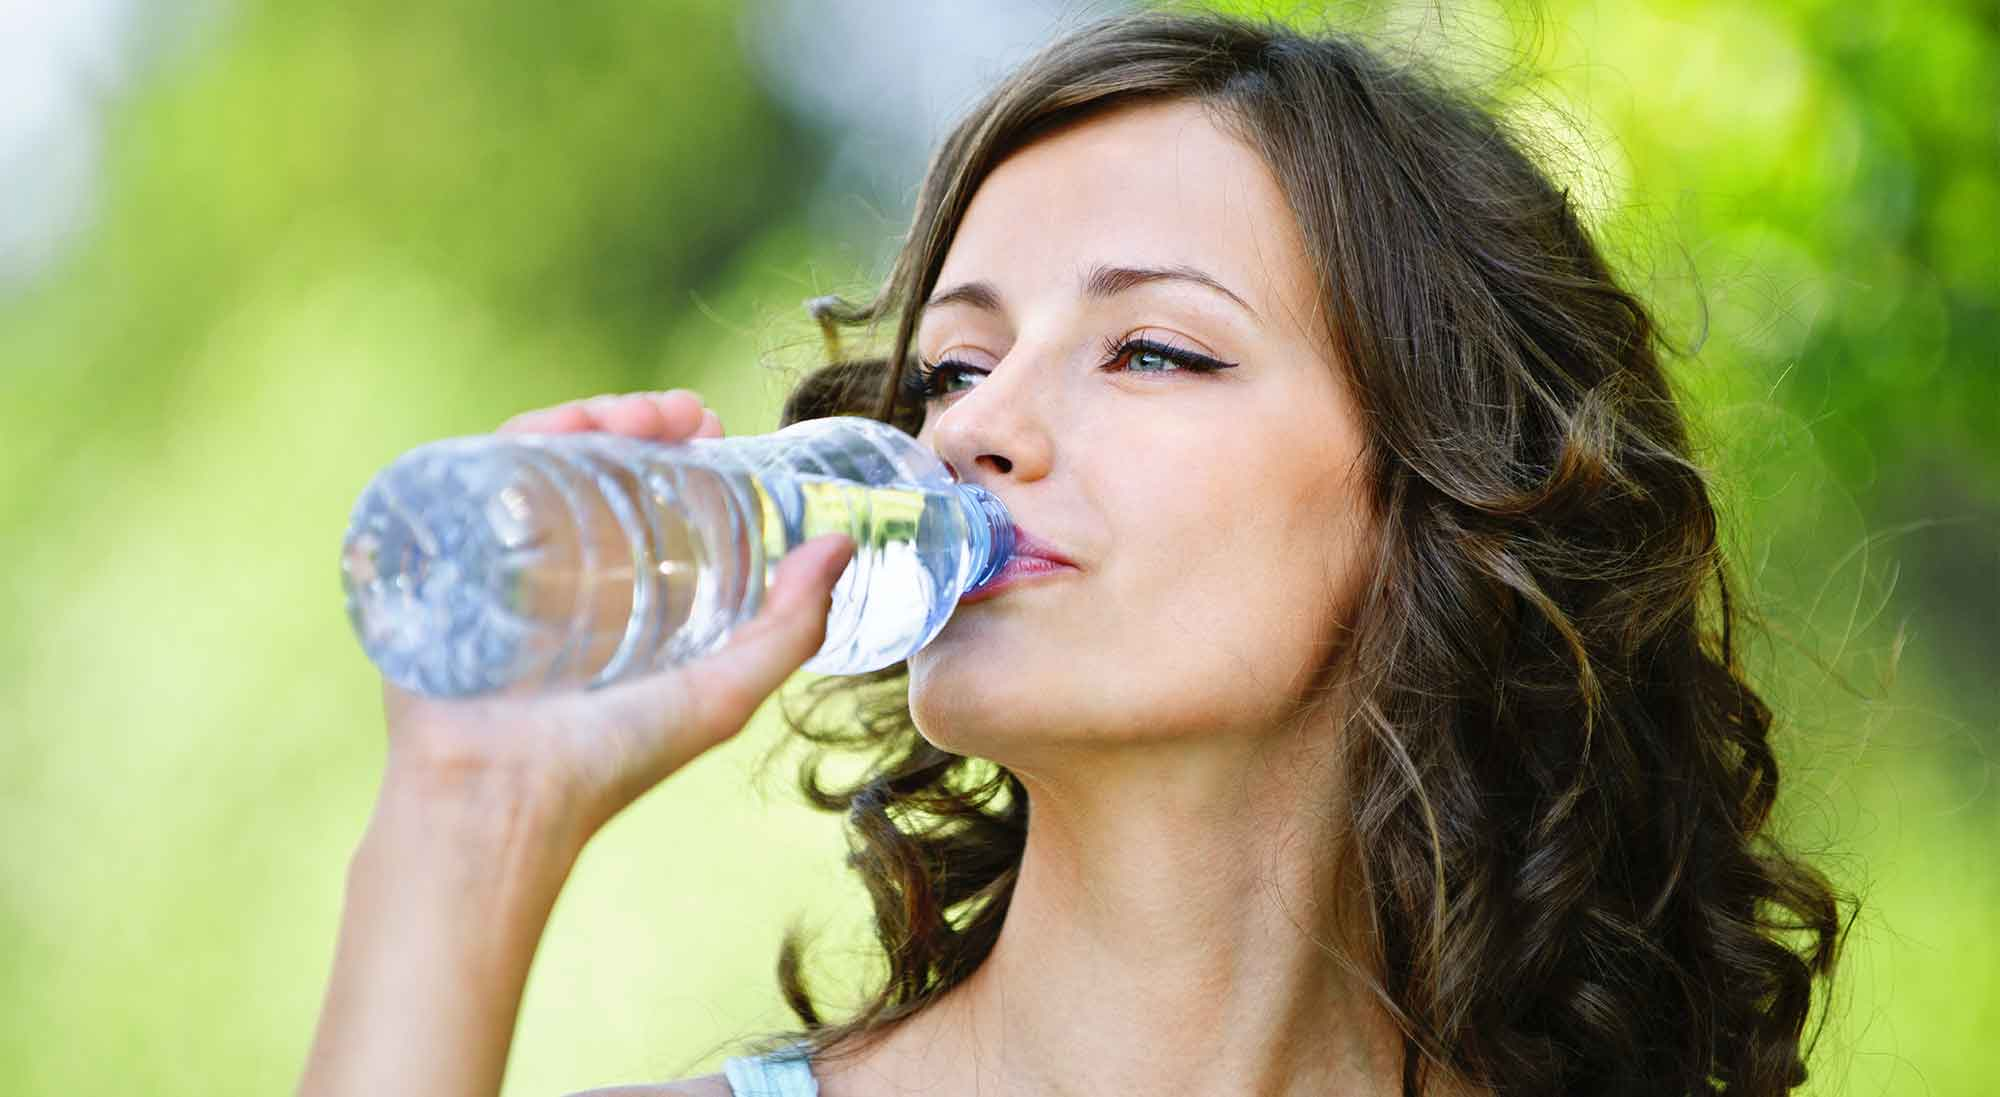 9 Reasons Why You Should Drink Water